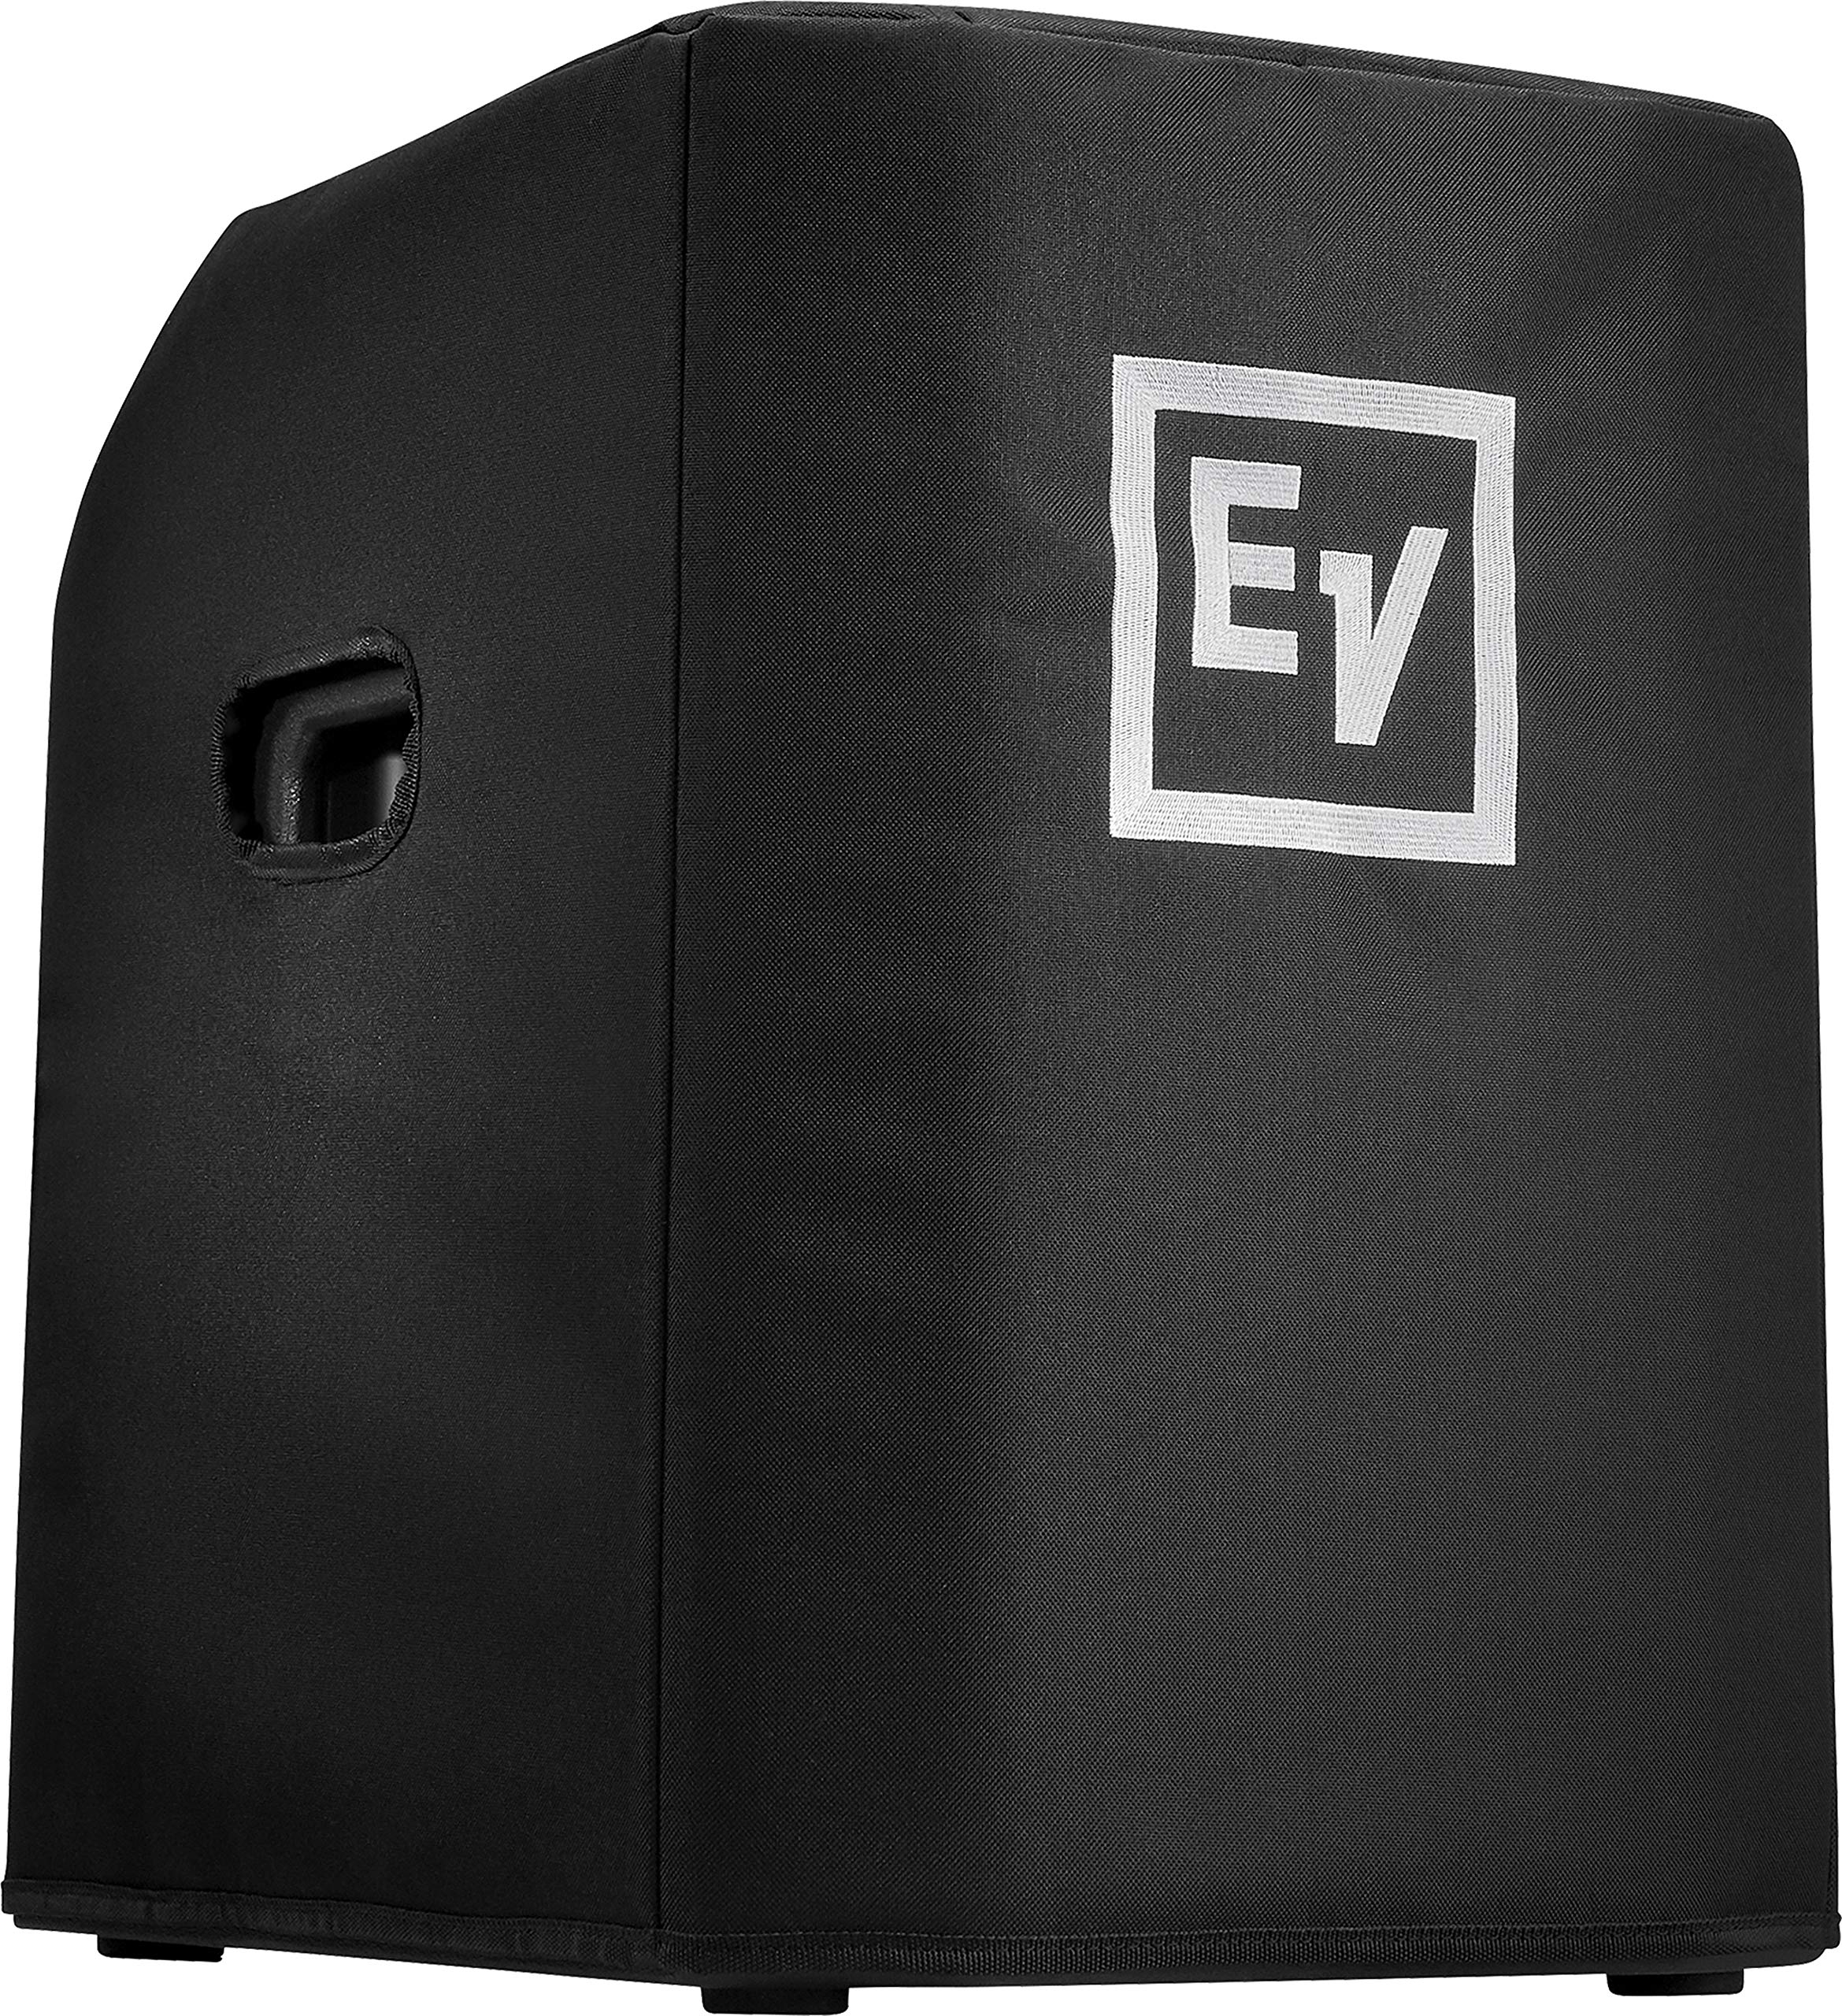 Electro-Voice Deluxe Padded Speaker Cover for Evolve 50 Subwoofers